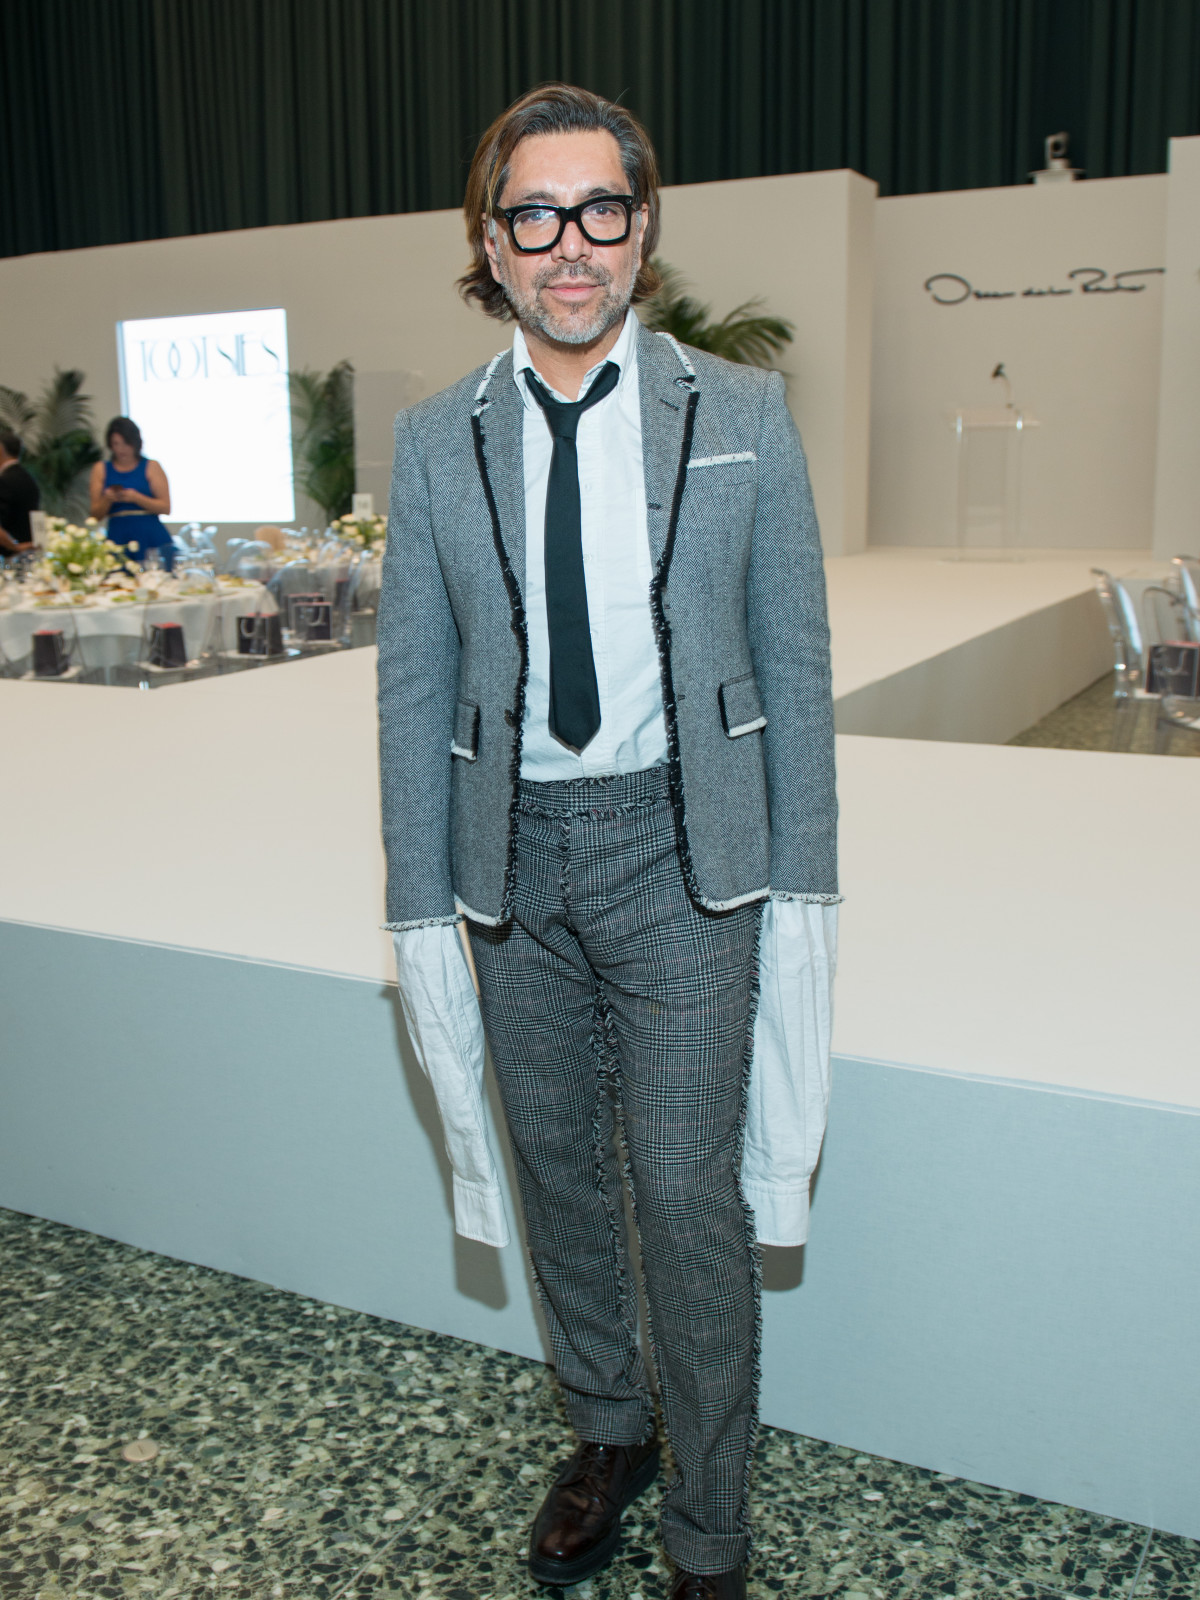 Ceron at Oscar de la Renta fashion show at MFAH